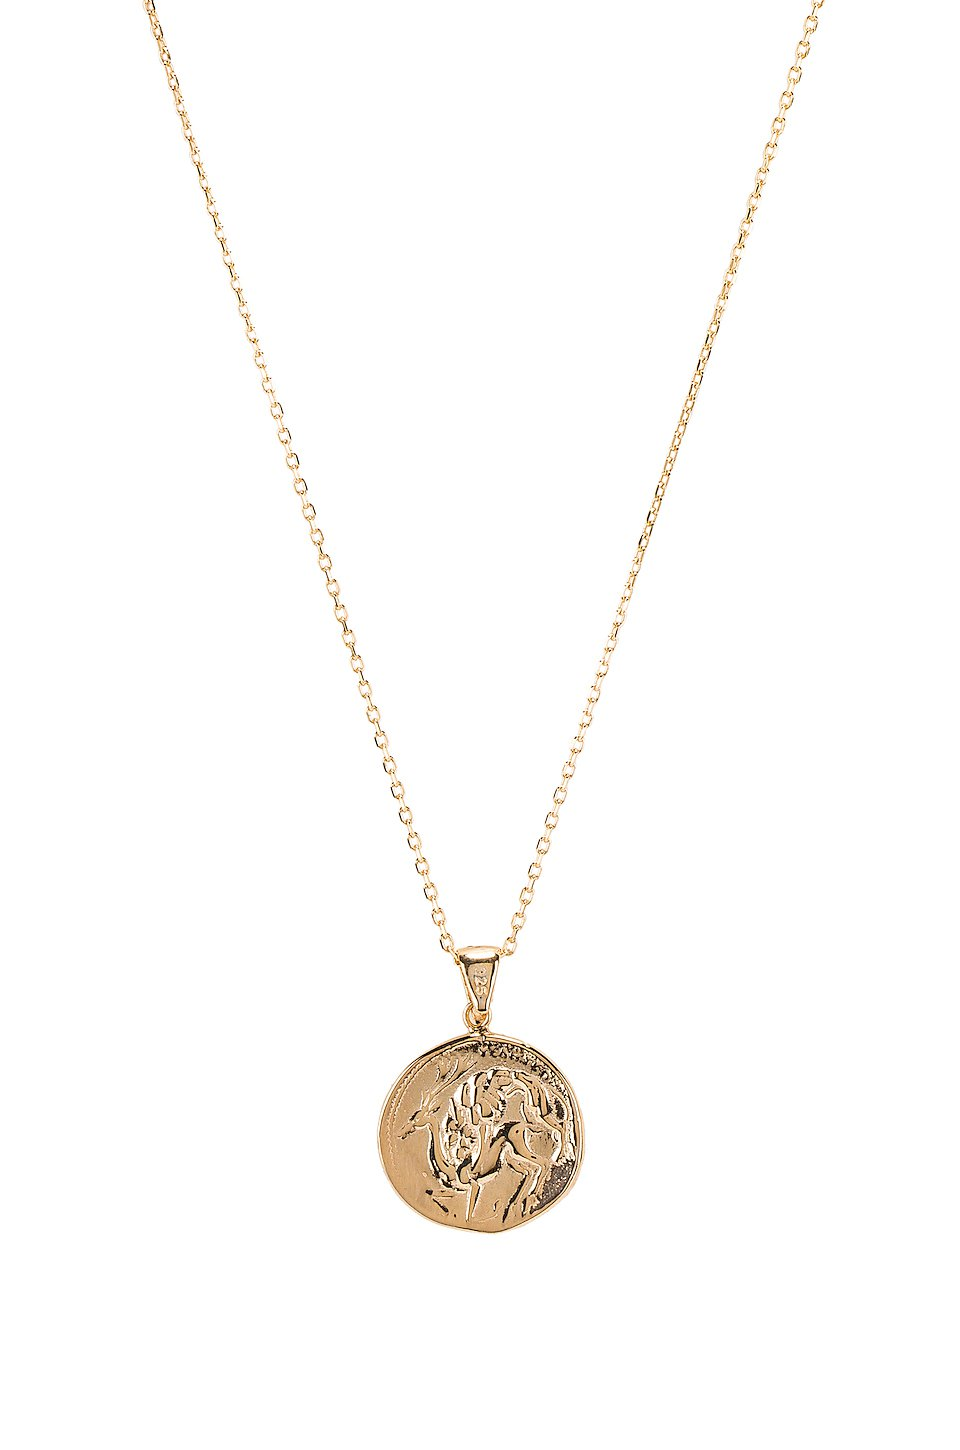 The Protector Reversible Coin Pendant Necklace